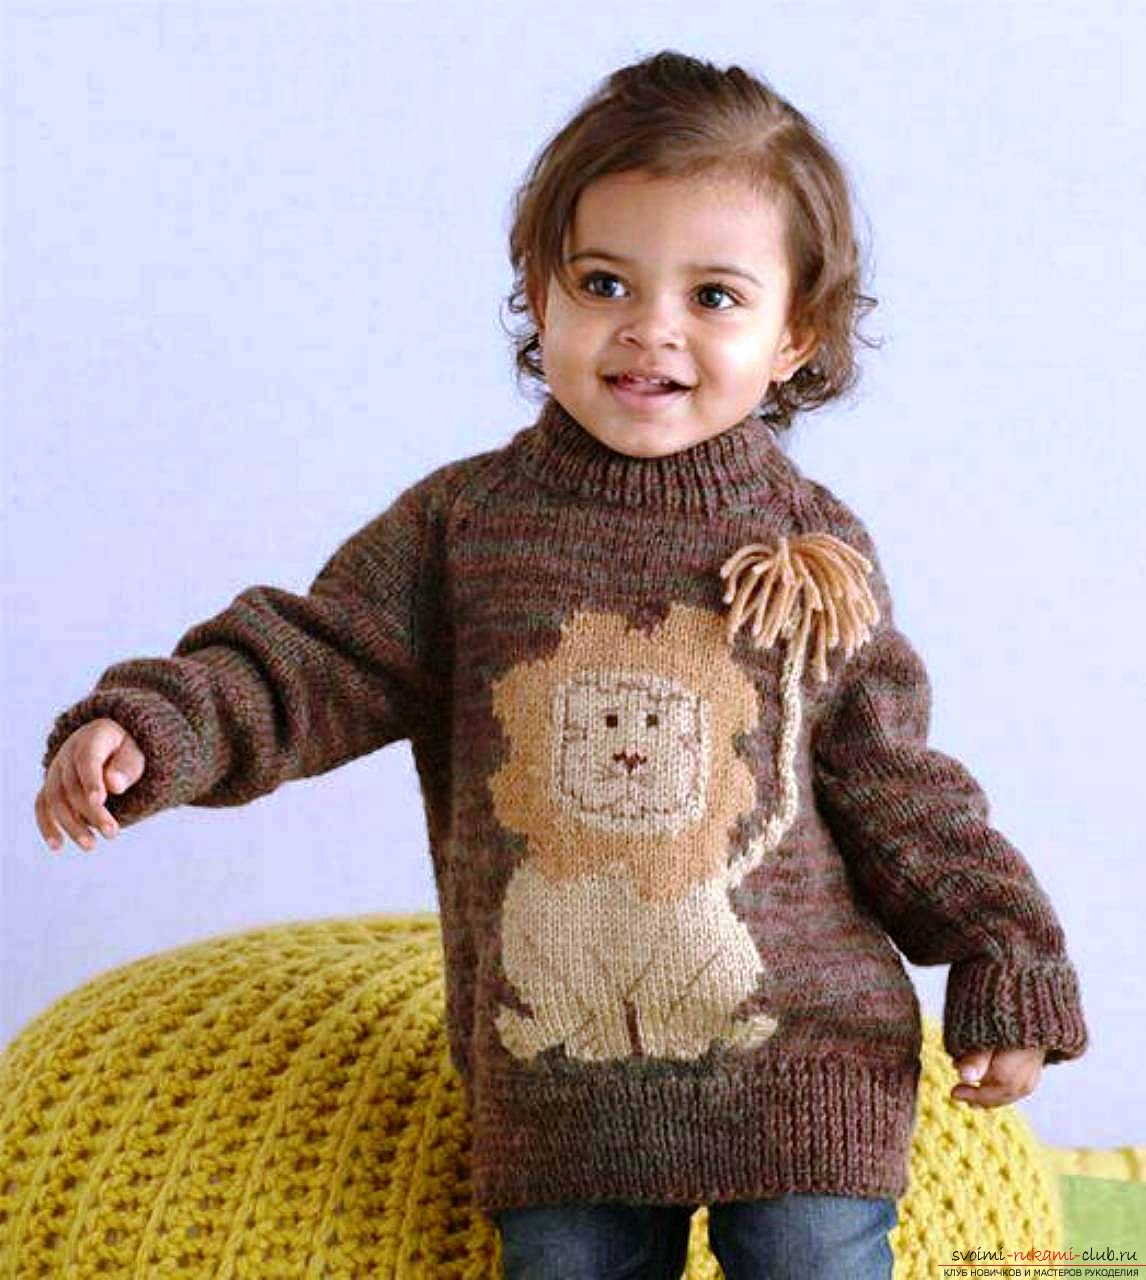 baby knitted sweaters. Photo # 2